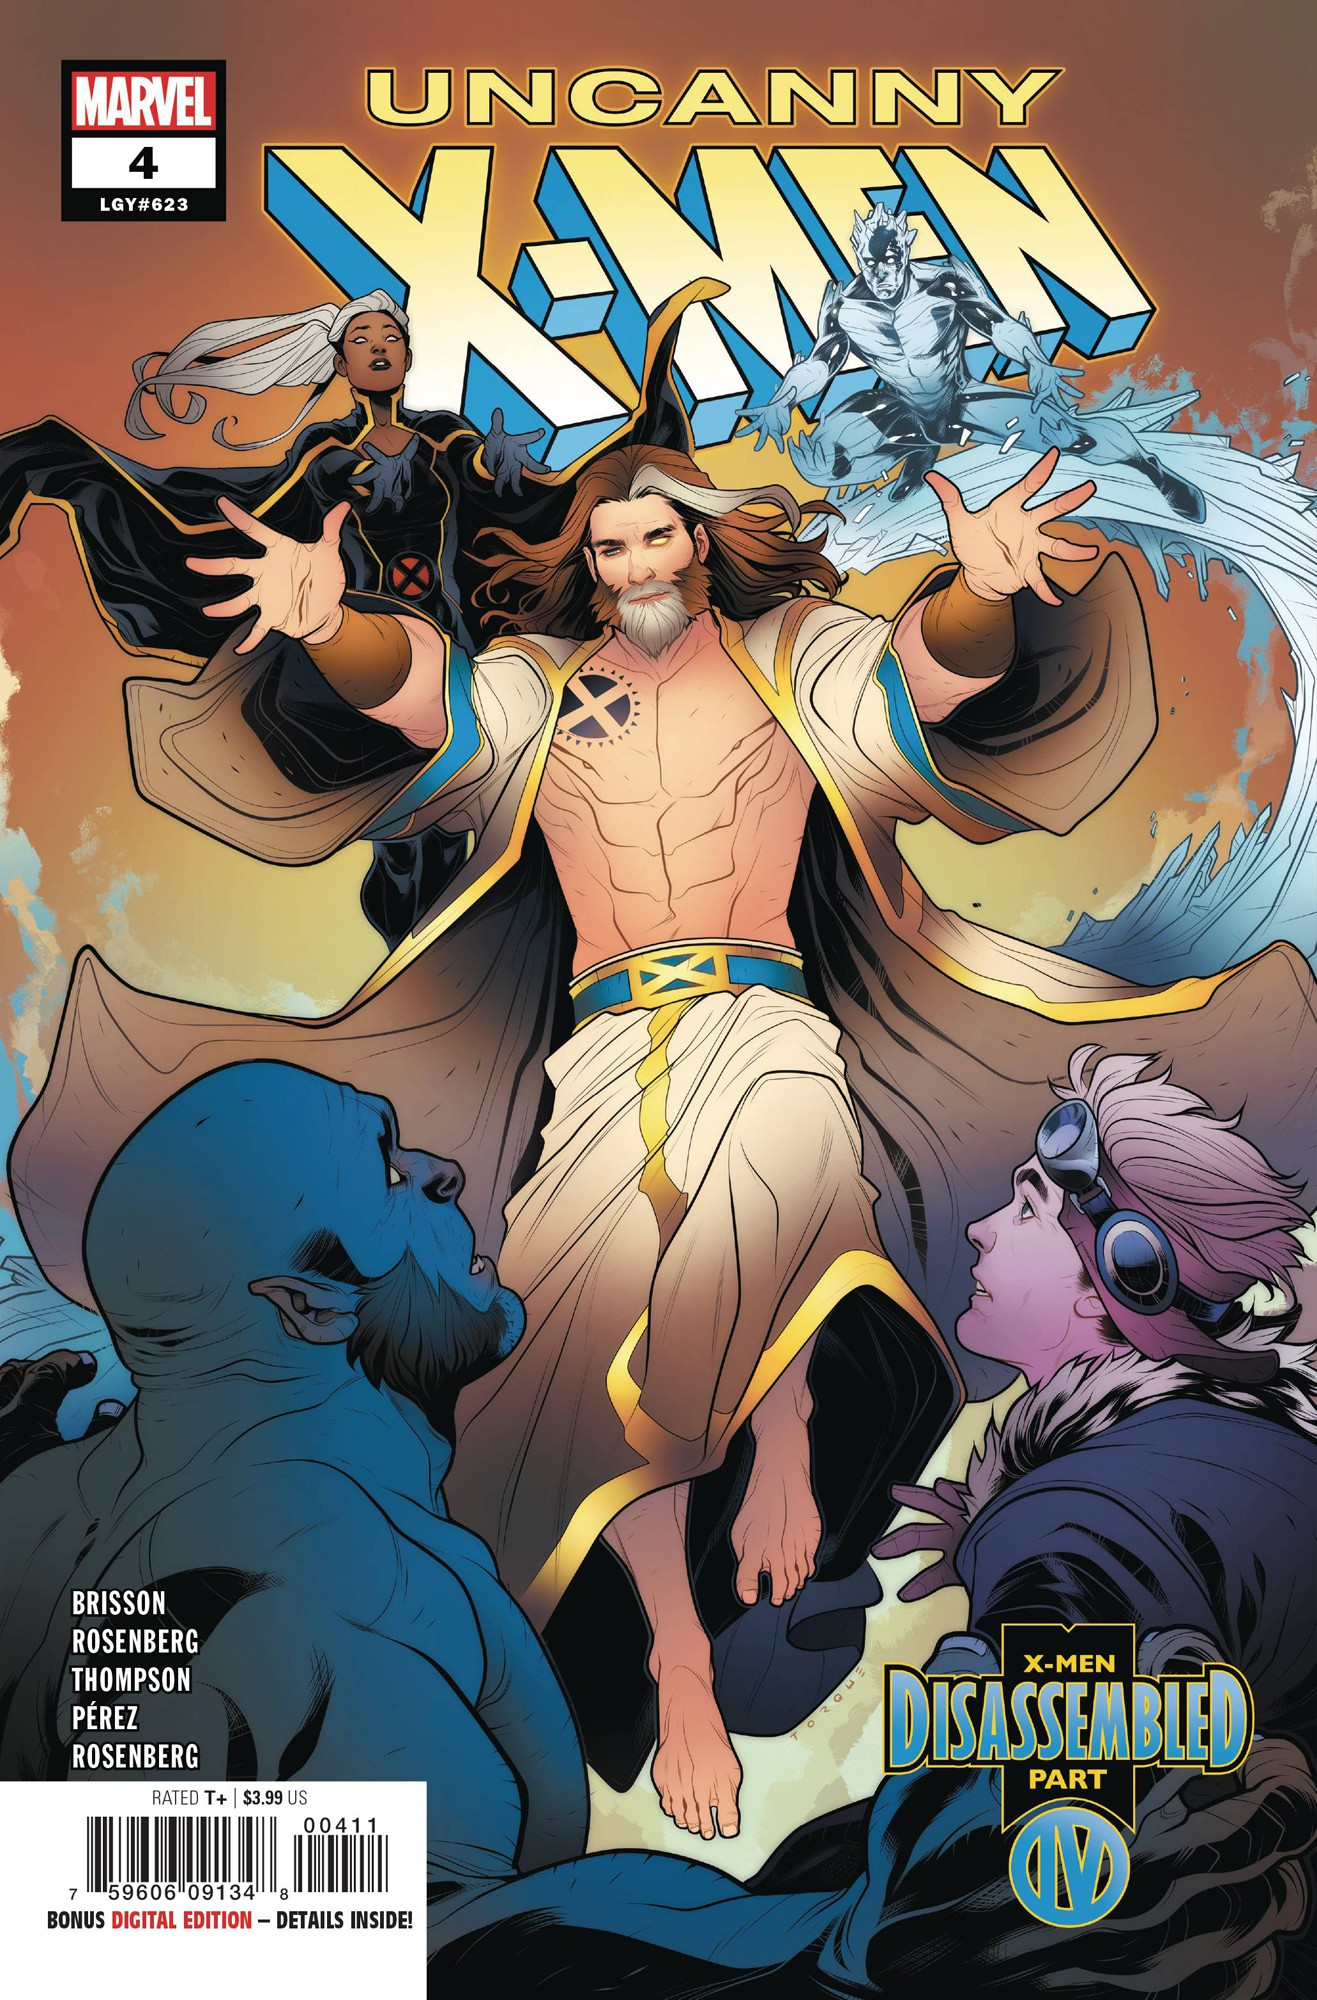 Marvel Uncanny X-Men #4 by